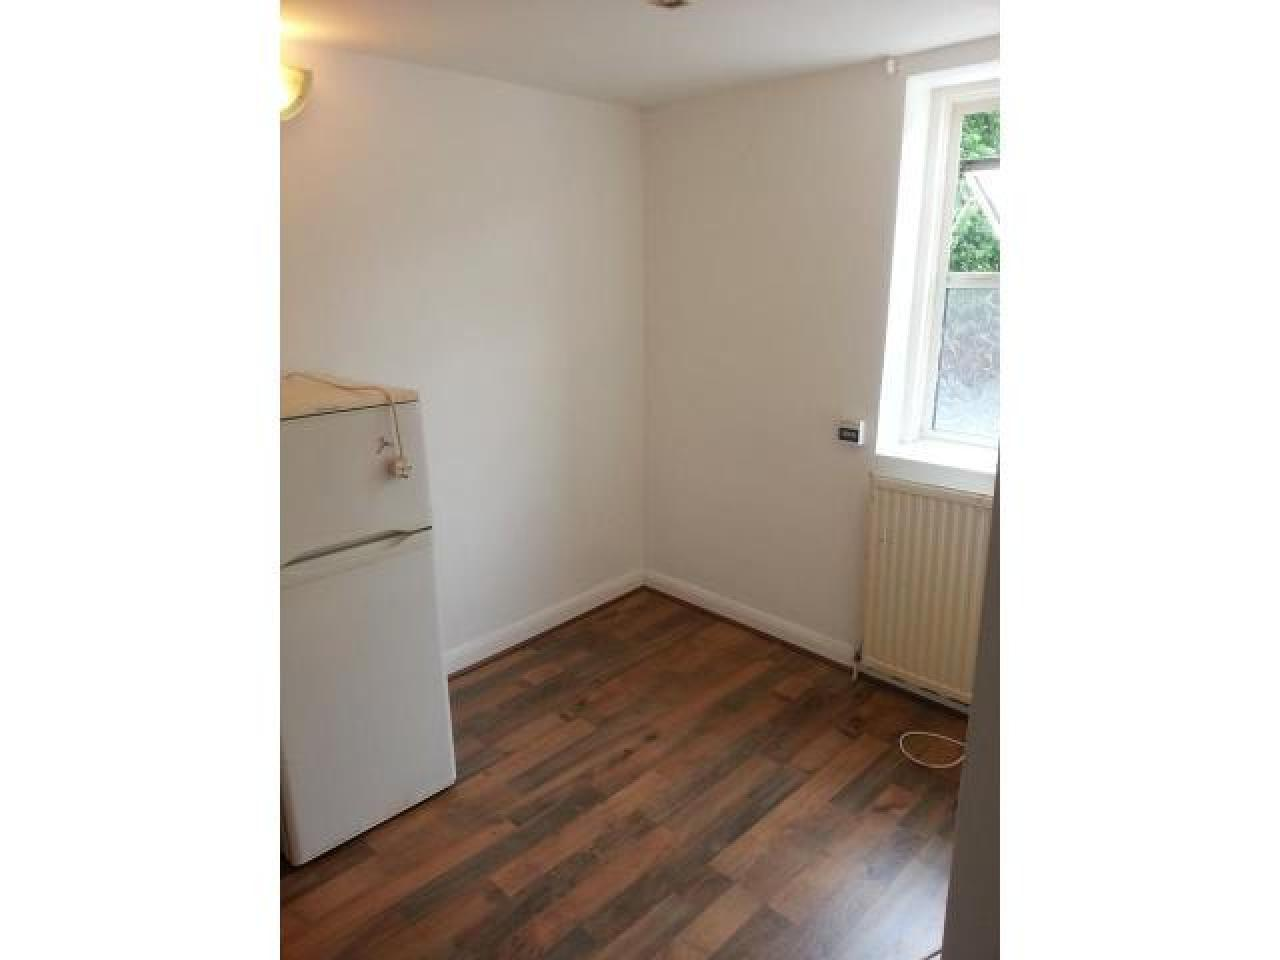 6 Studio Flats, Aldsworth Rd, Stratford, E15 1 000 £ — Available 20th July - 2